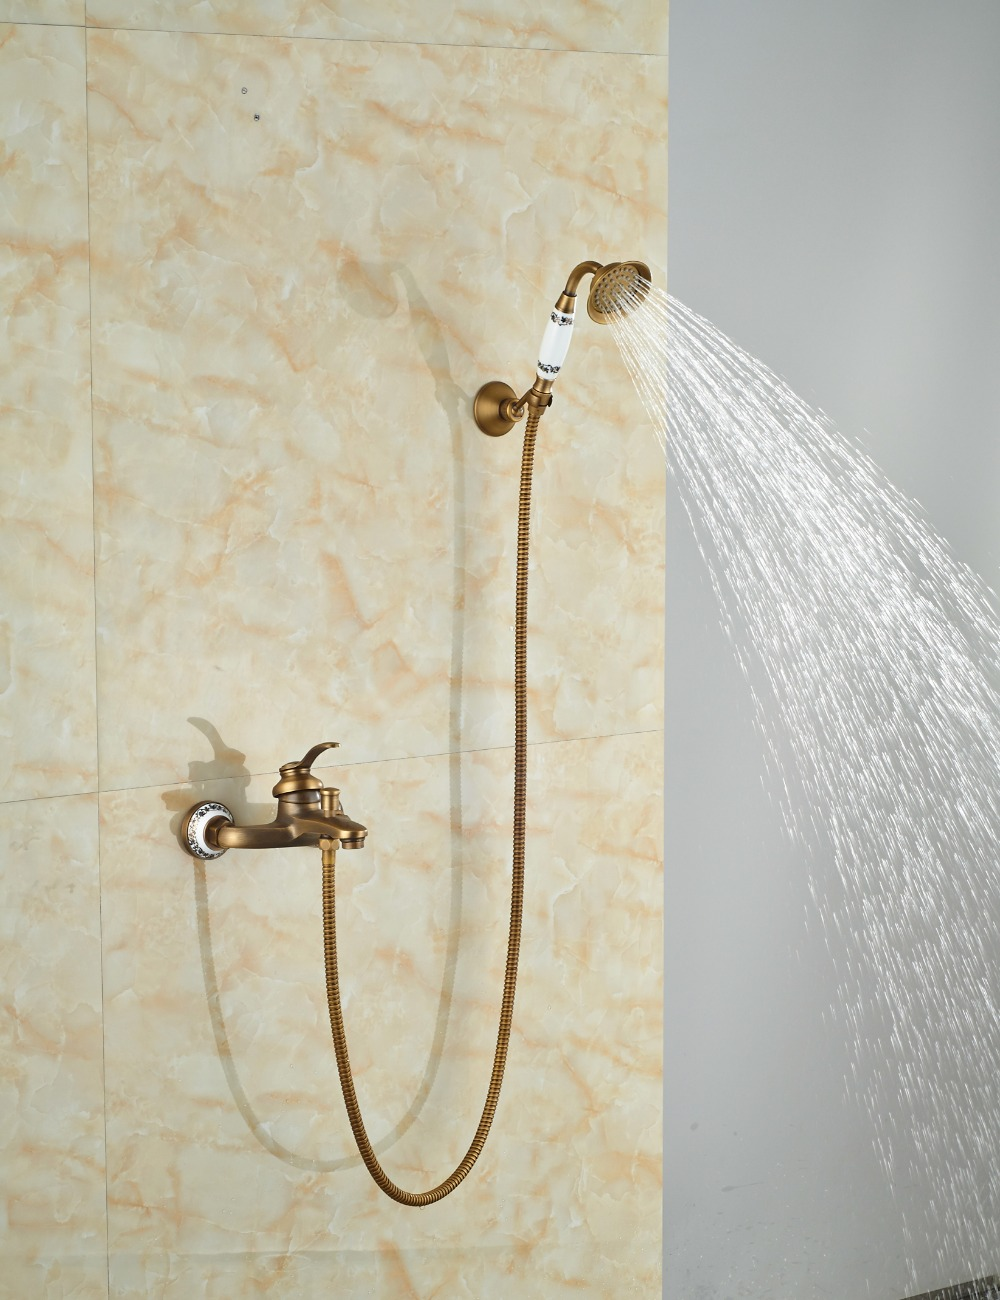 Multi-style Antique Brass Bathroom Tub Shower Faucet Wall Mounted Shower Mixer Tap W/ Hand Shower antique brass telephone style handheld shower head dual handles bath tub mixer tap wall mounted bathroom faucet wtf312